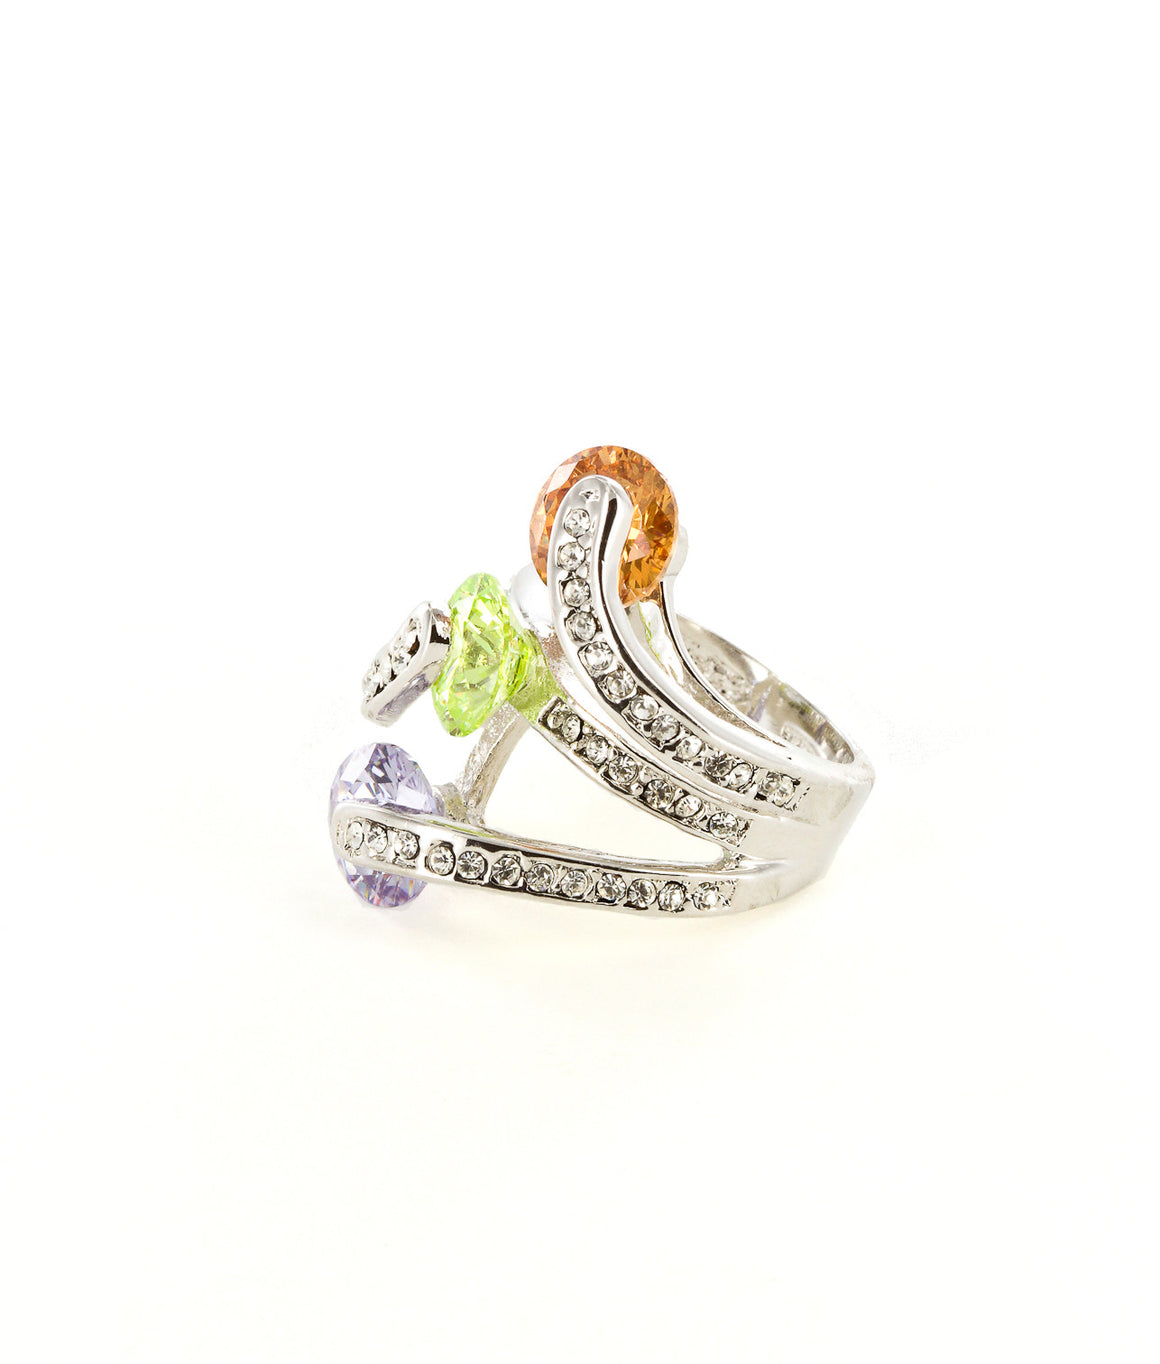 Wraparound cocktail ring with bright colorful rhinestones.